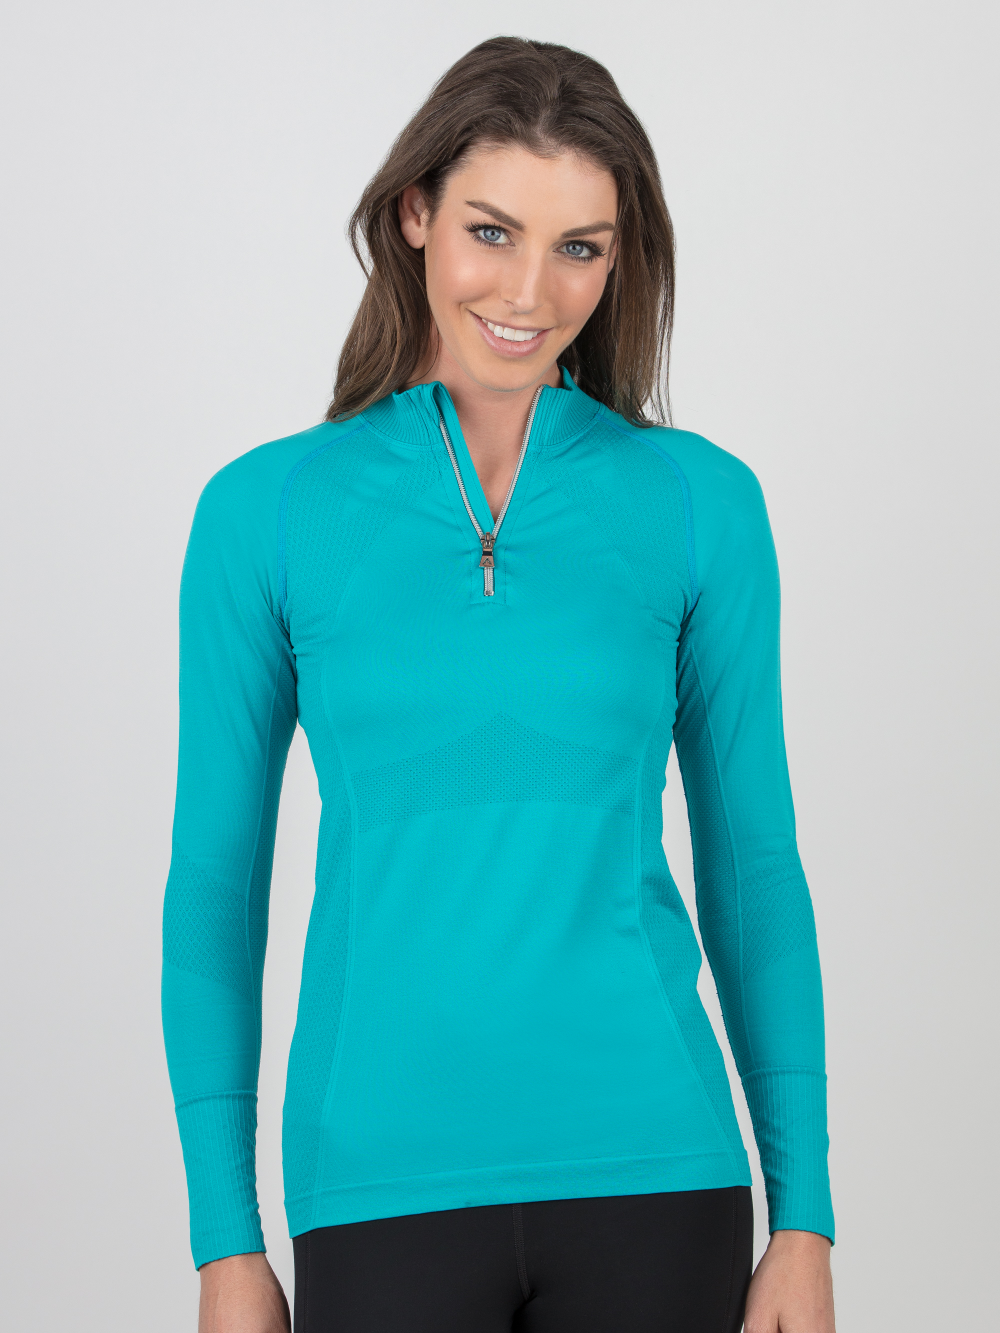 Anique Seamless Zip Cooling Long Sleeve Shirt - Luxe EQ